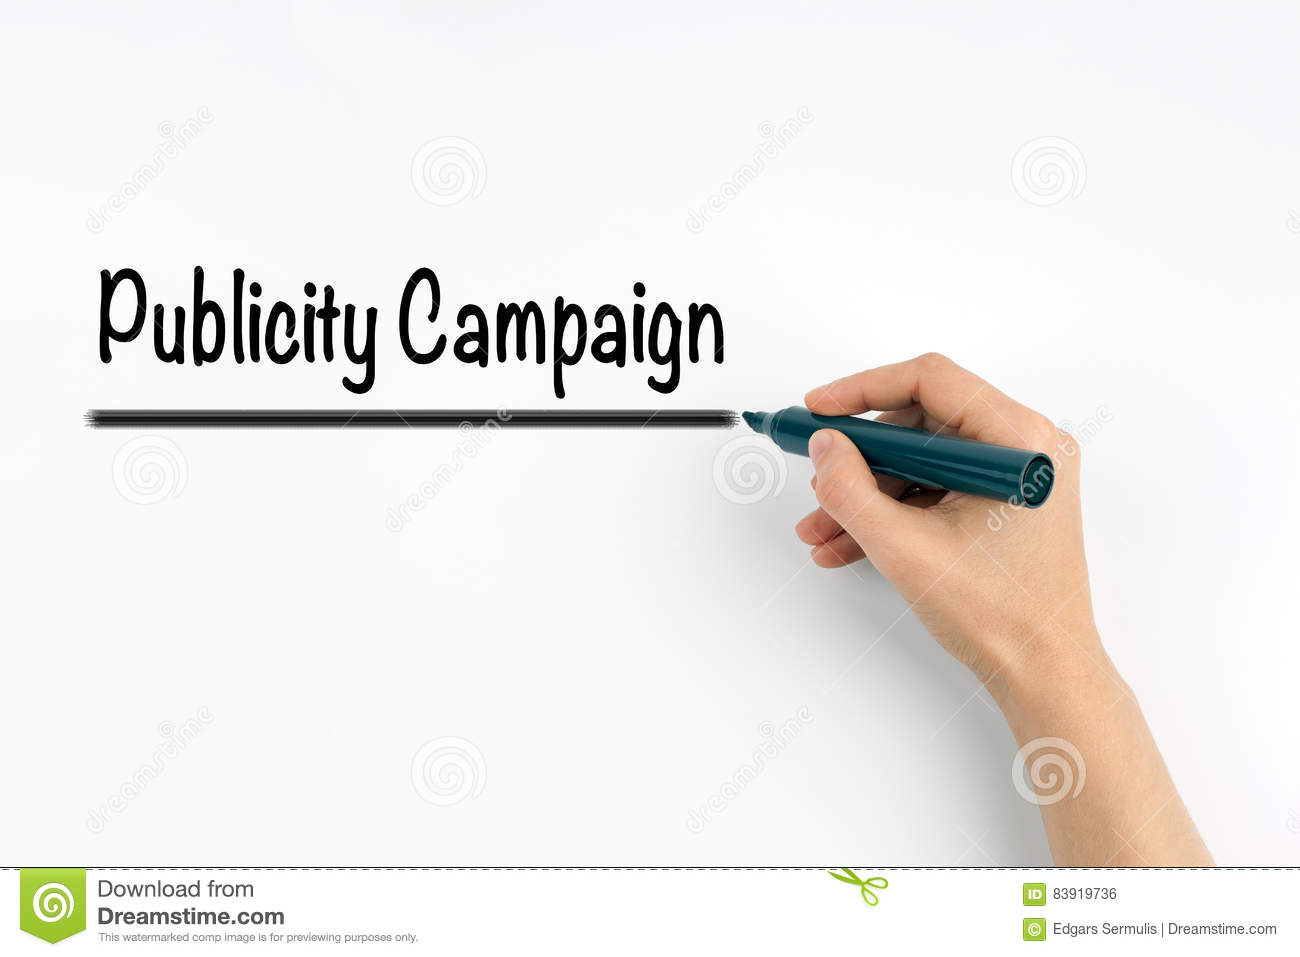 Publicity Campaign. Hand with marker writing on a white background